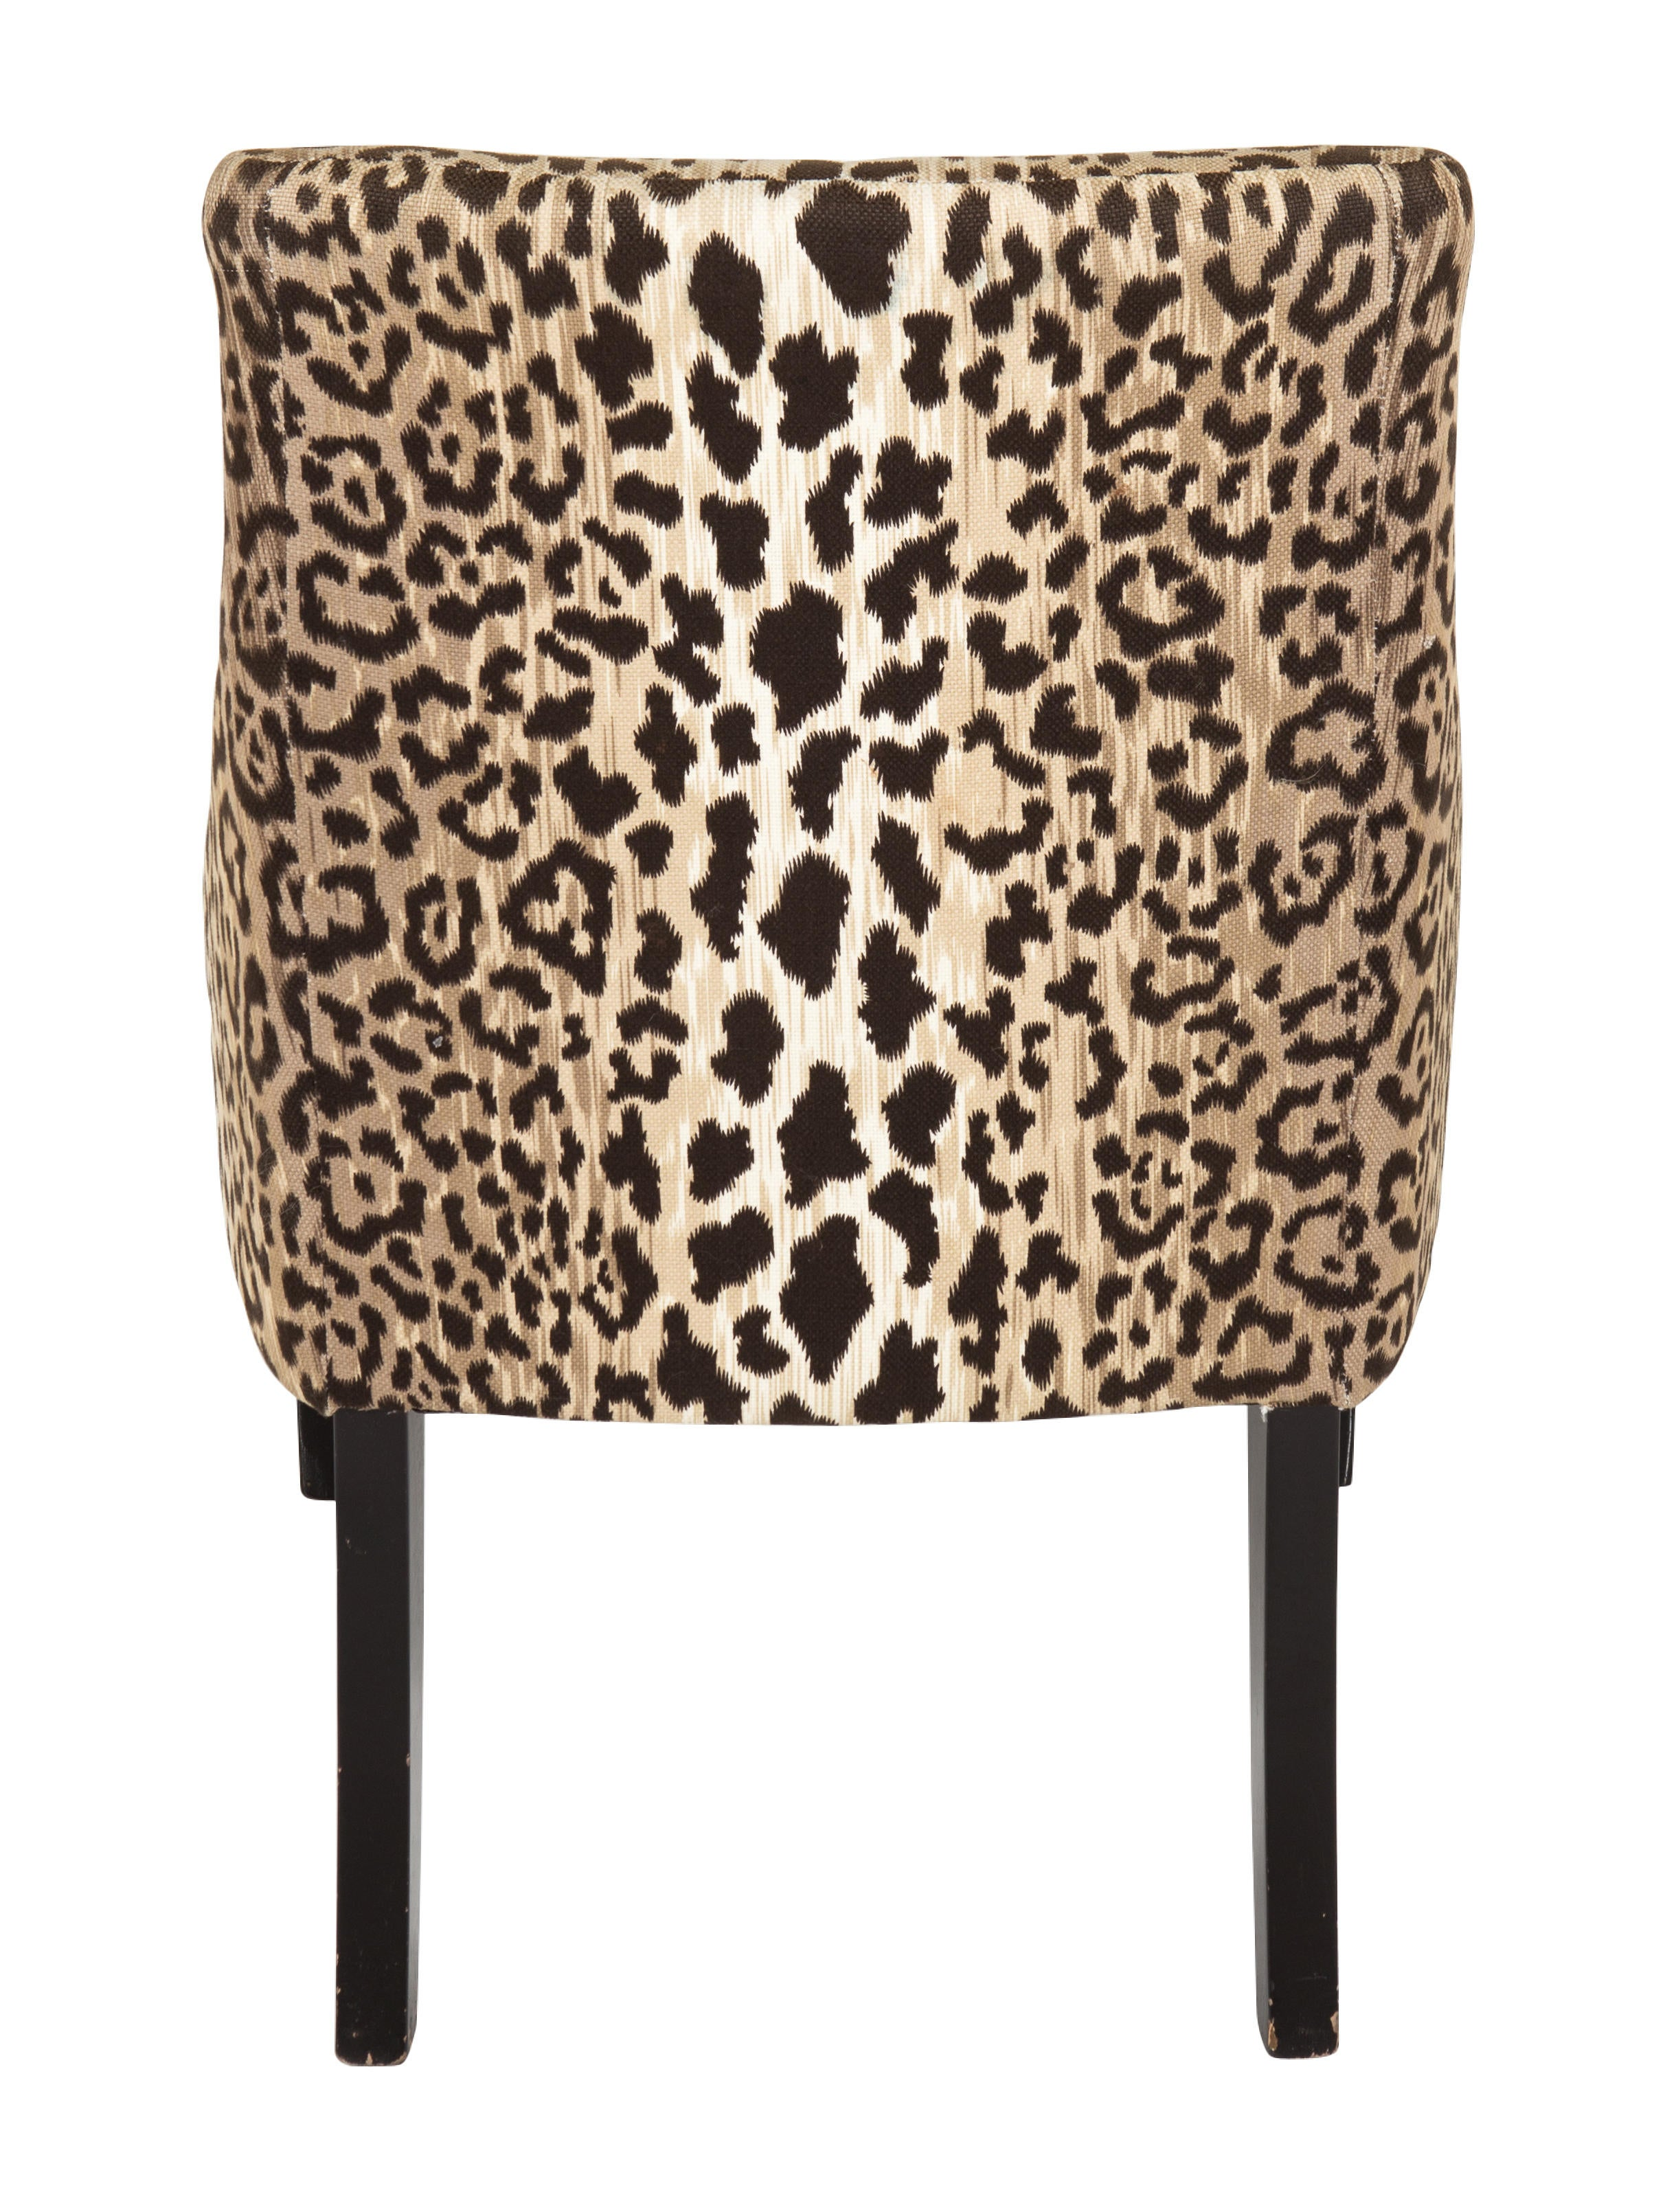 Chair Leopard Print Upholstered Chairs Furniture Chair20342 The Realreal